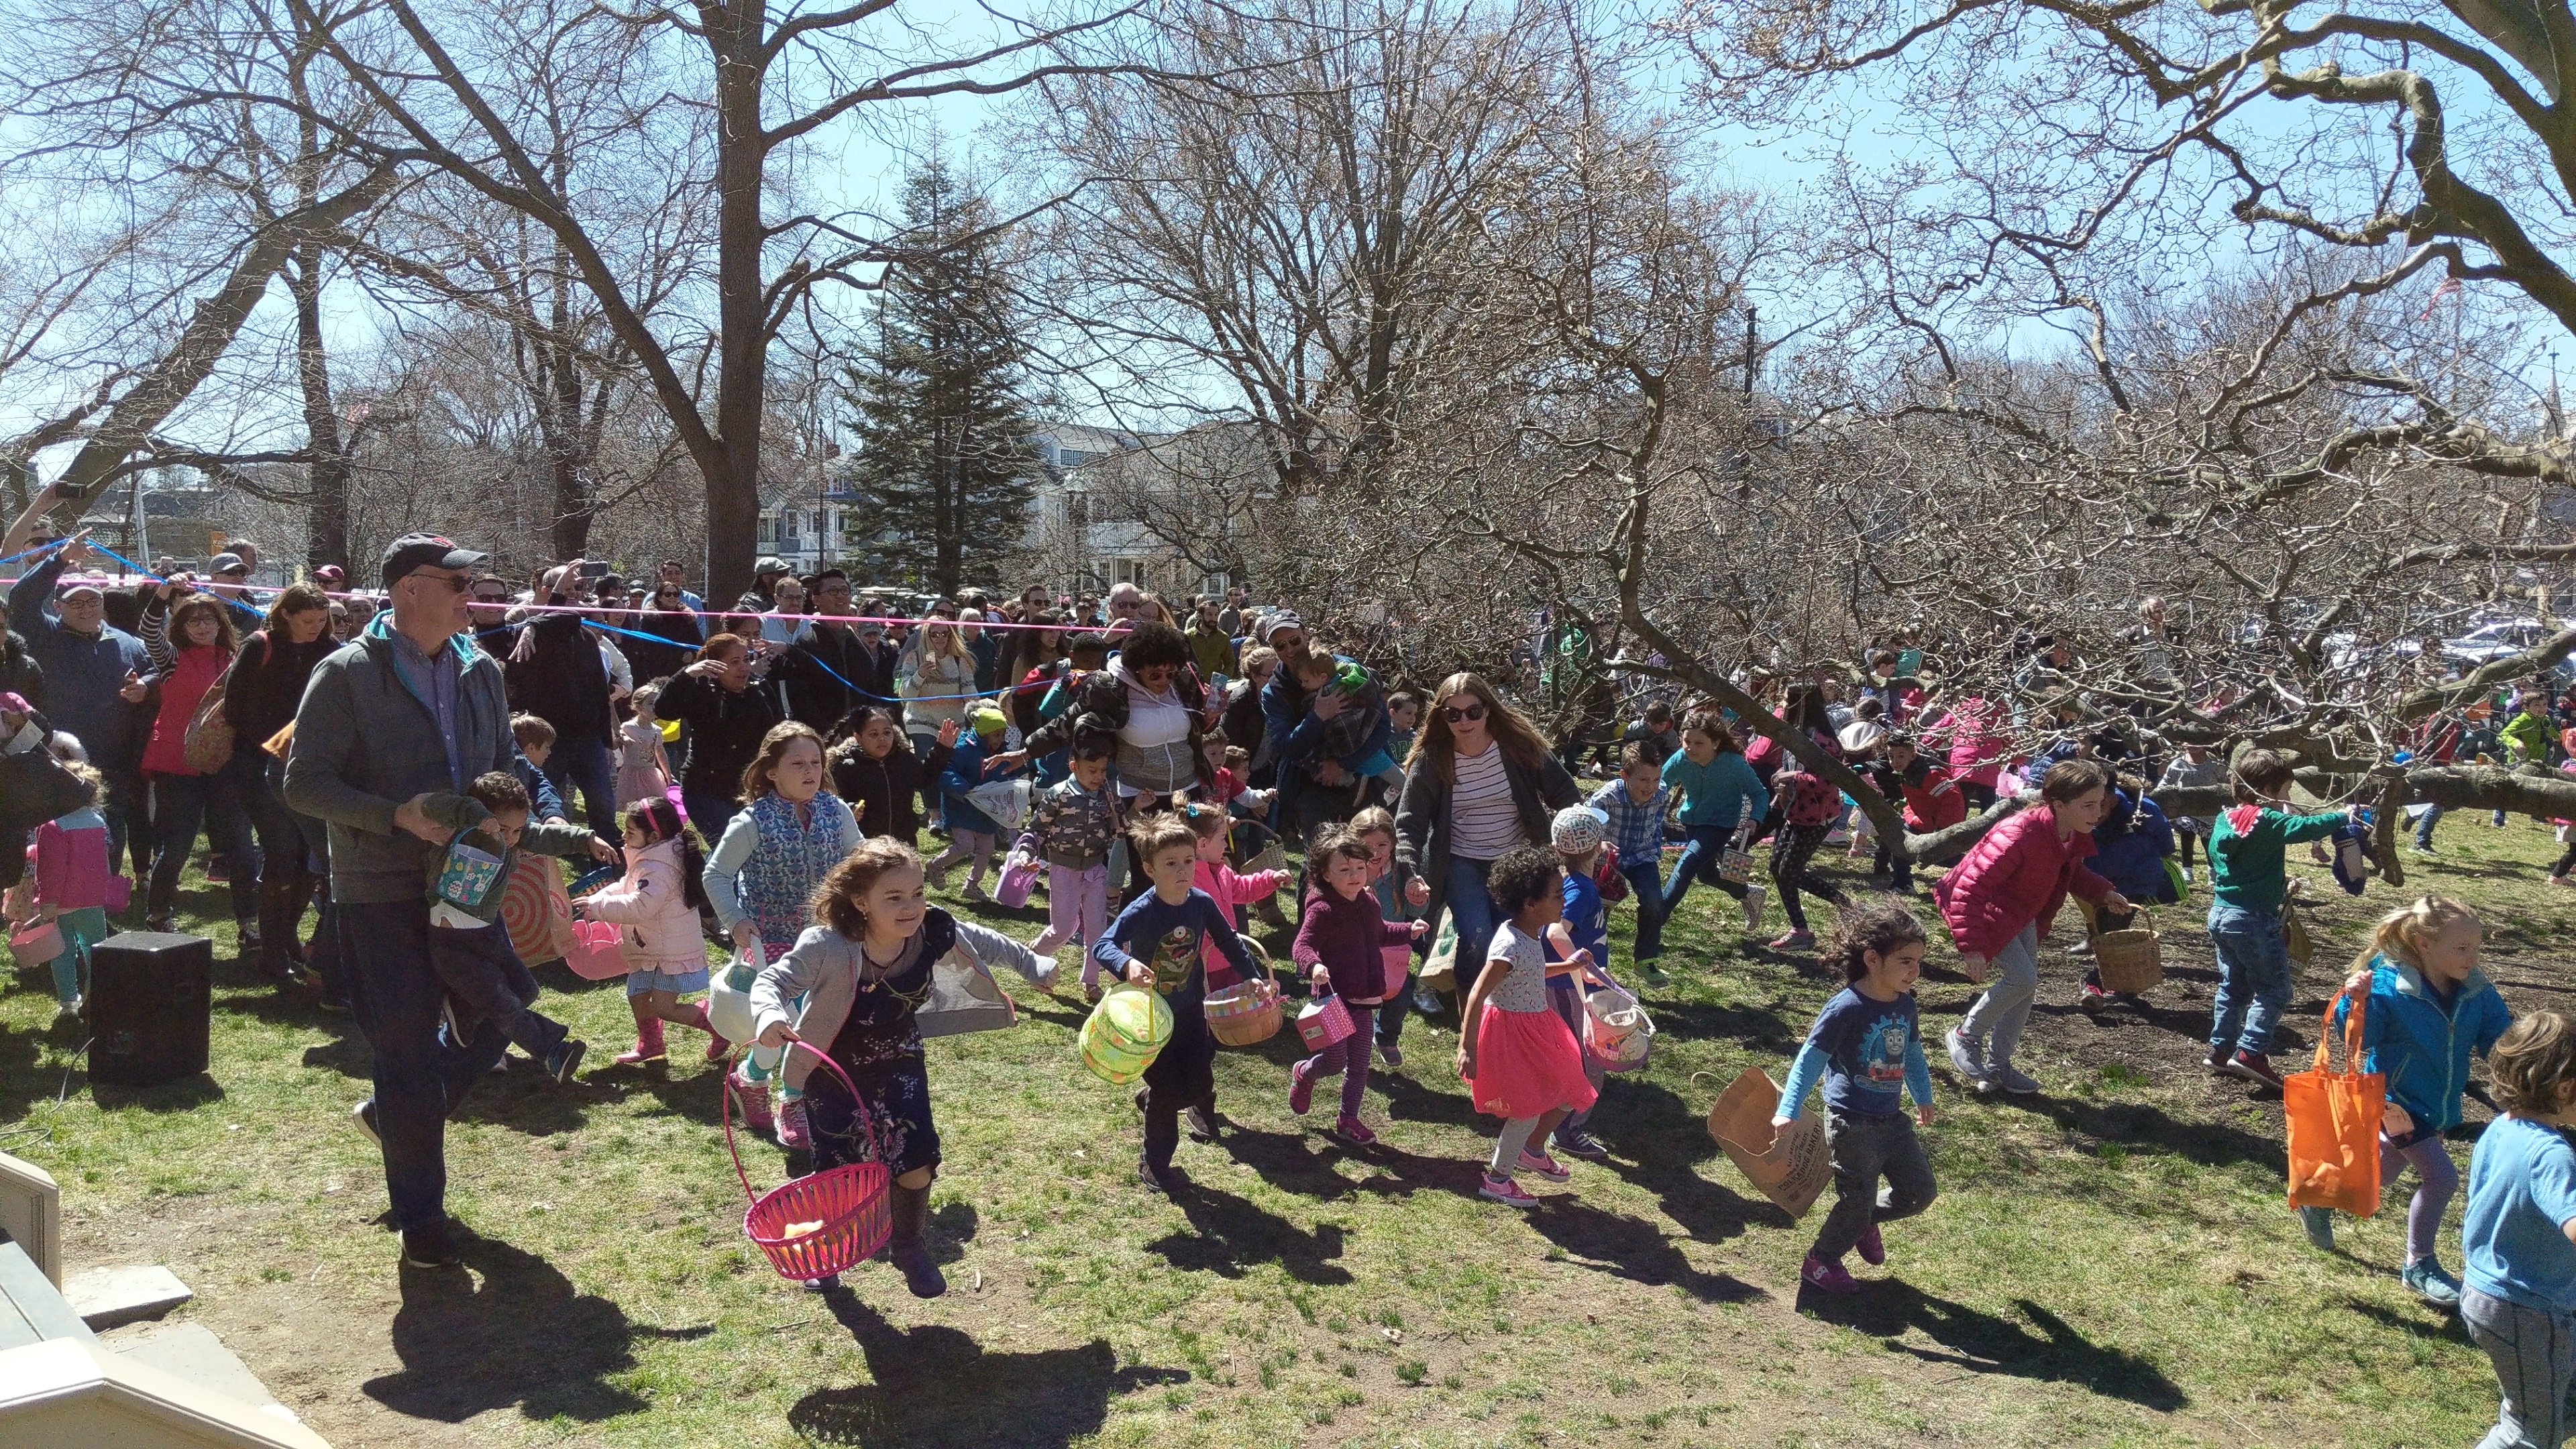 There will be no spring egg hunt at the Loring Greenough House